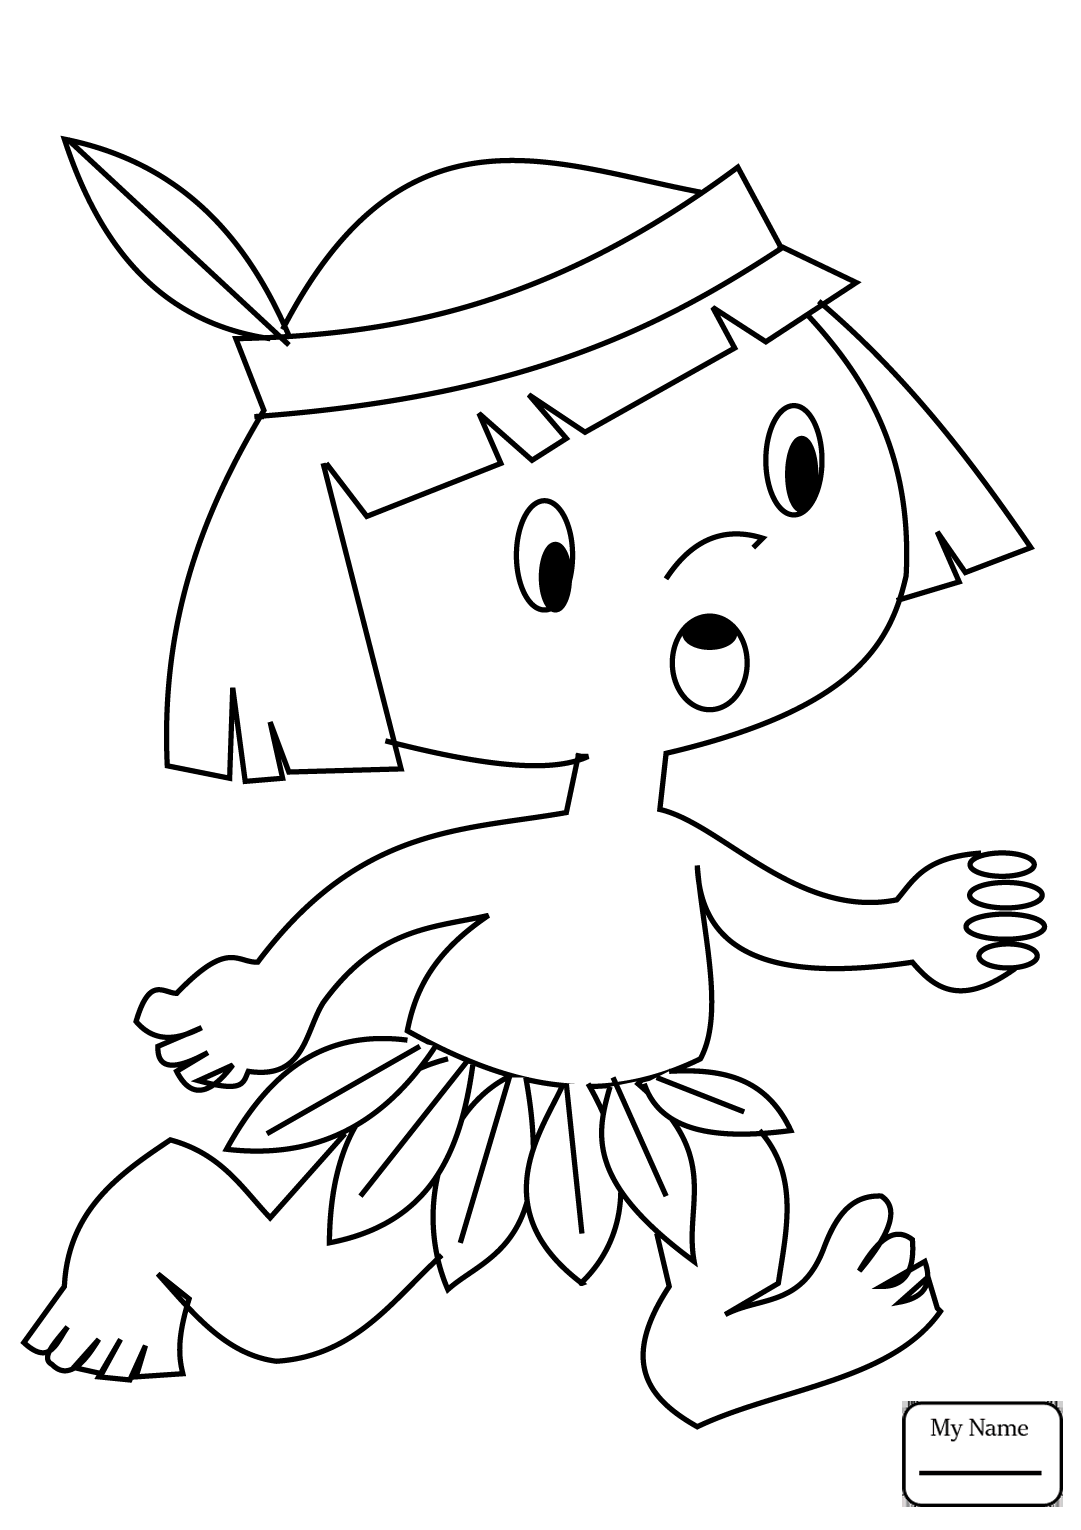 1081x1530 Coloring Pages For Kids Native Americans Cartoon Indian Chief